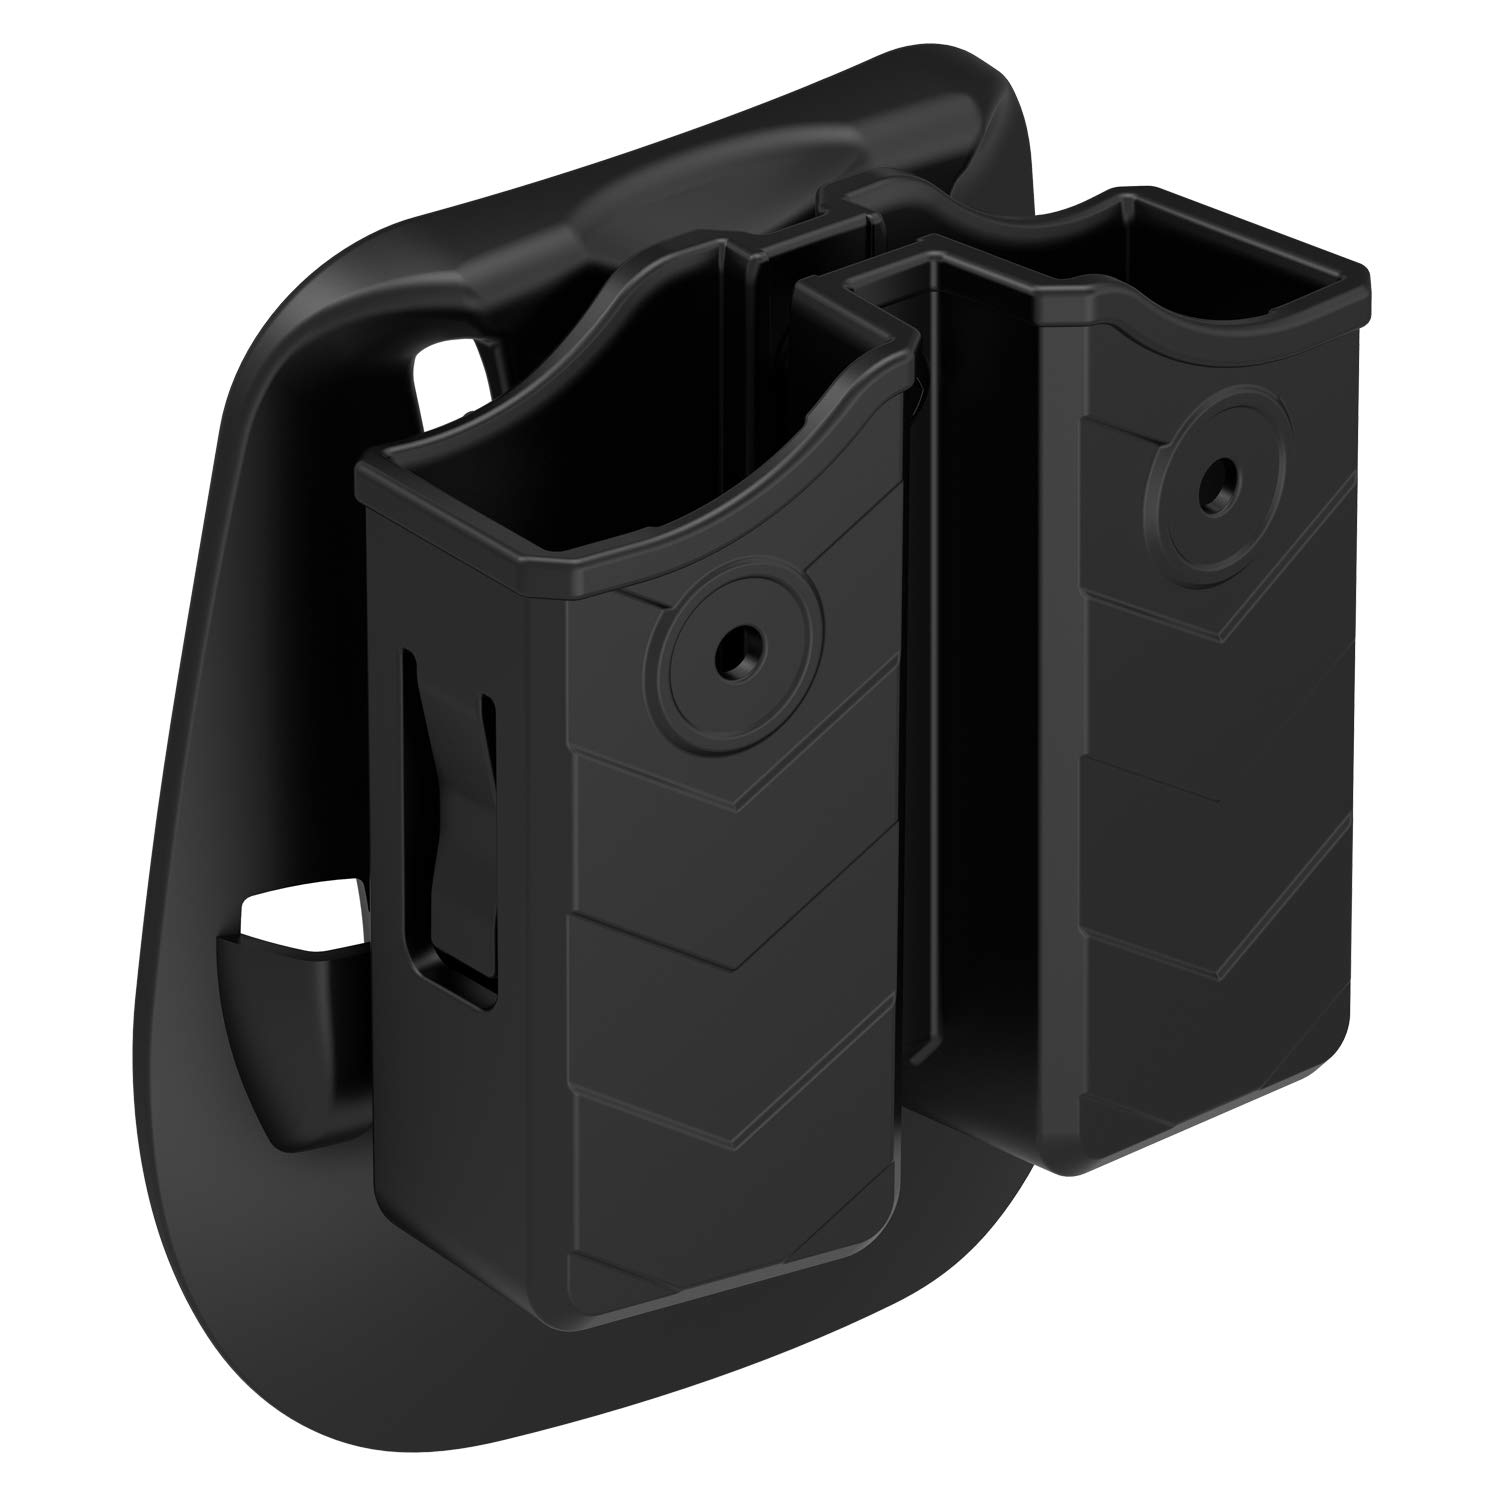 Double Magazine Holster, Universal 9mm .40 Double Stack Mag. Pouch Dual Stack Mag Holder with Adjustable Paddle Fit Glock Sig sauer S&W Beretta Browning Taurus H&K Most Pistol Mags by TEGE